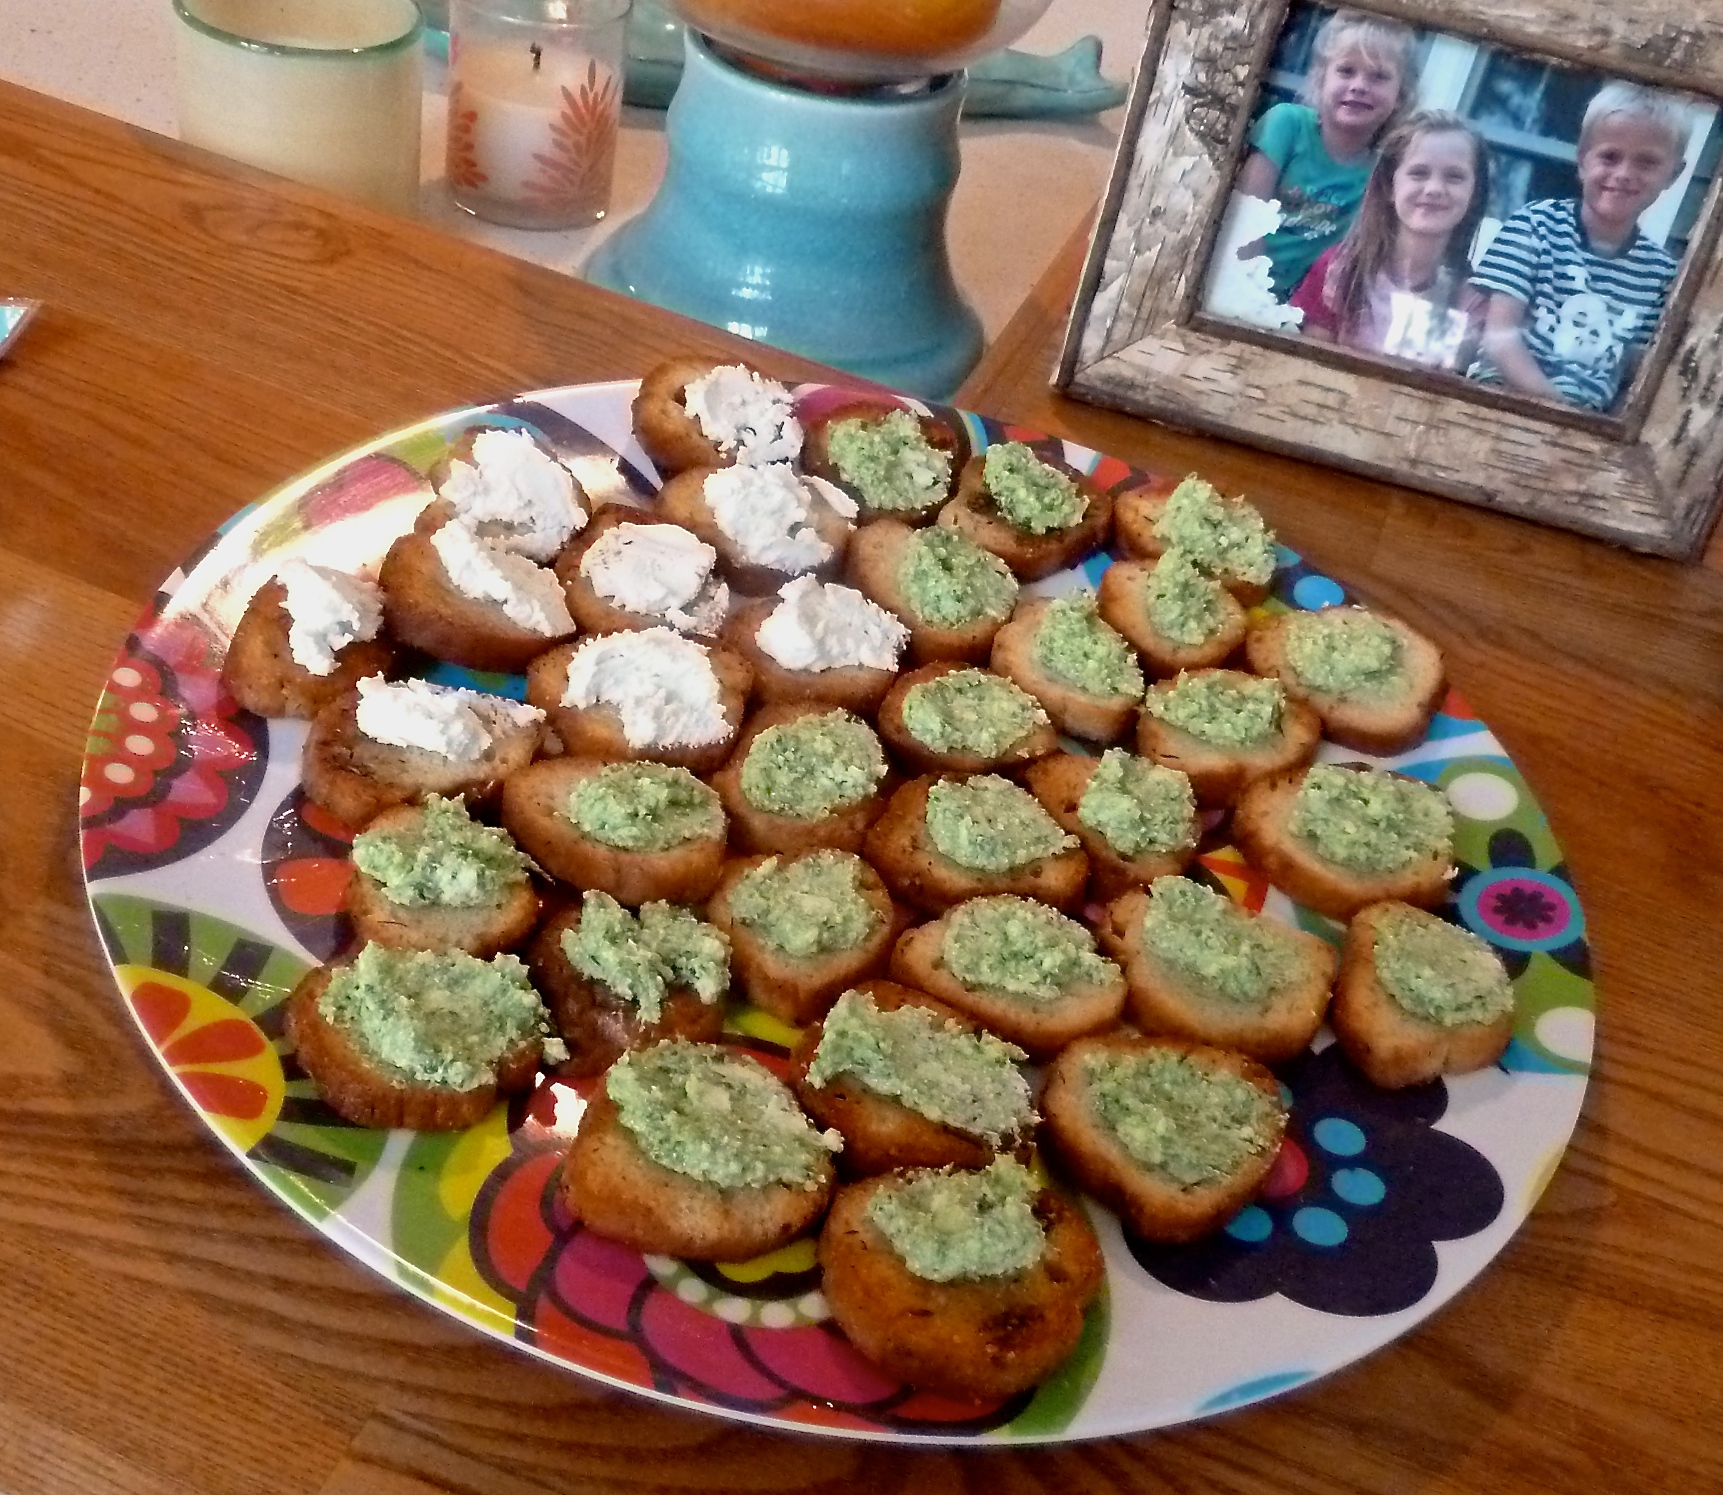 Crostinis with Goat Cheese and Pesto